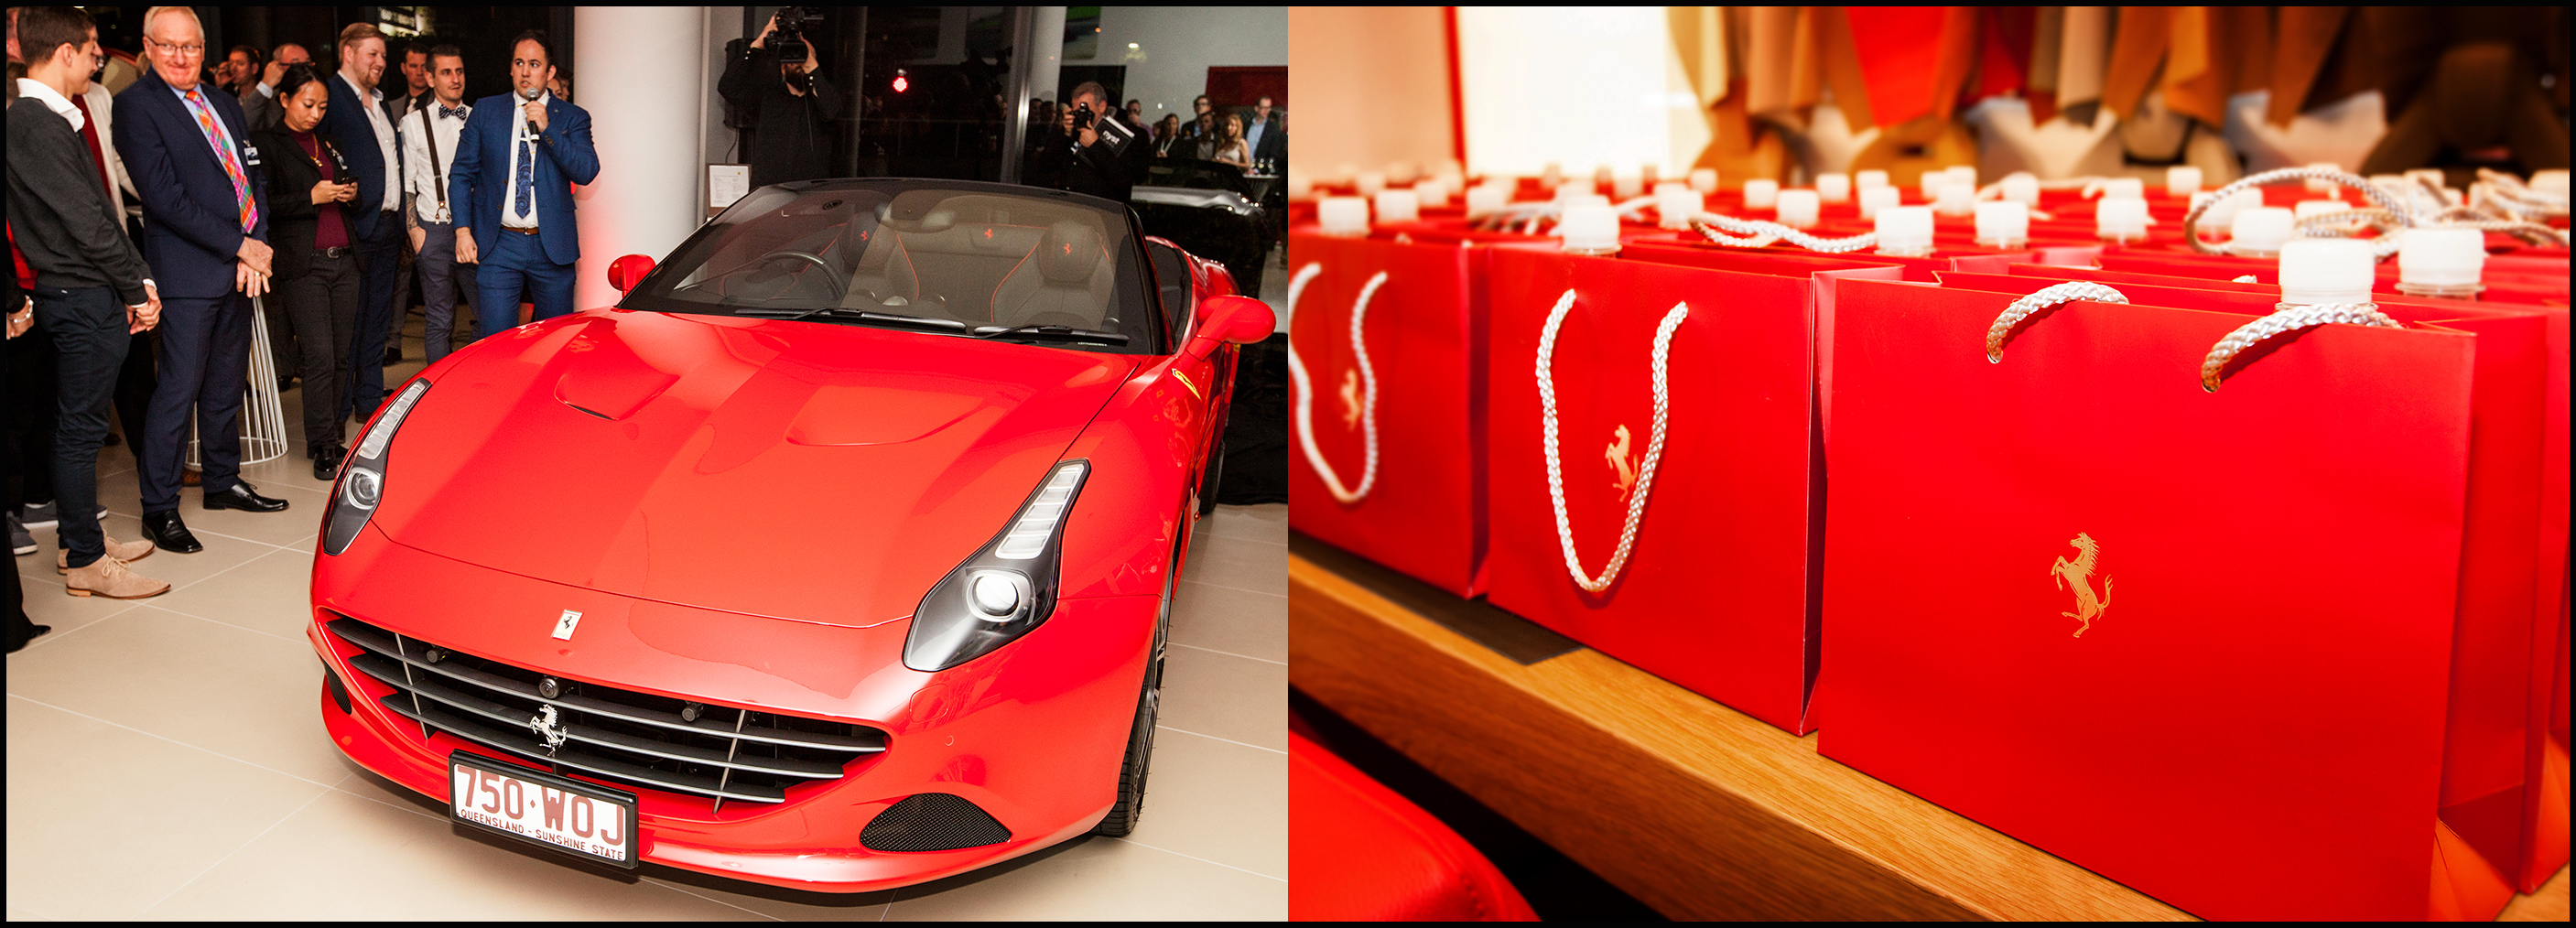 Brisbane_Event_Photography-Ferrari_007